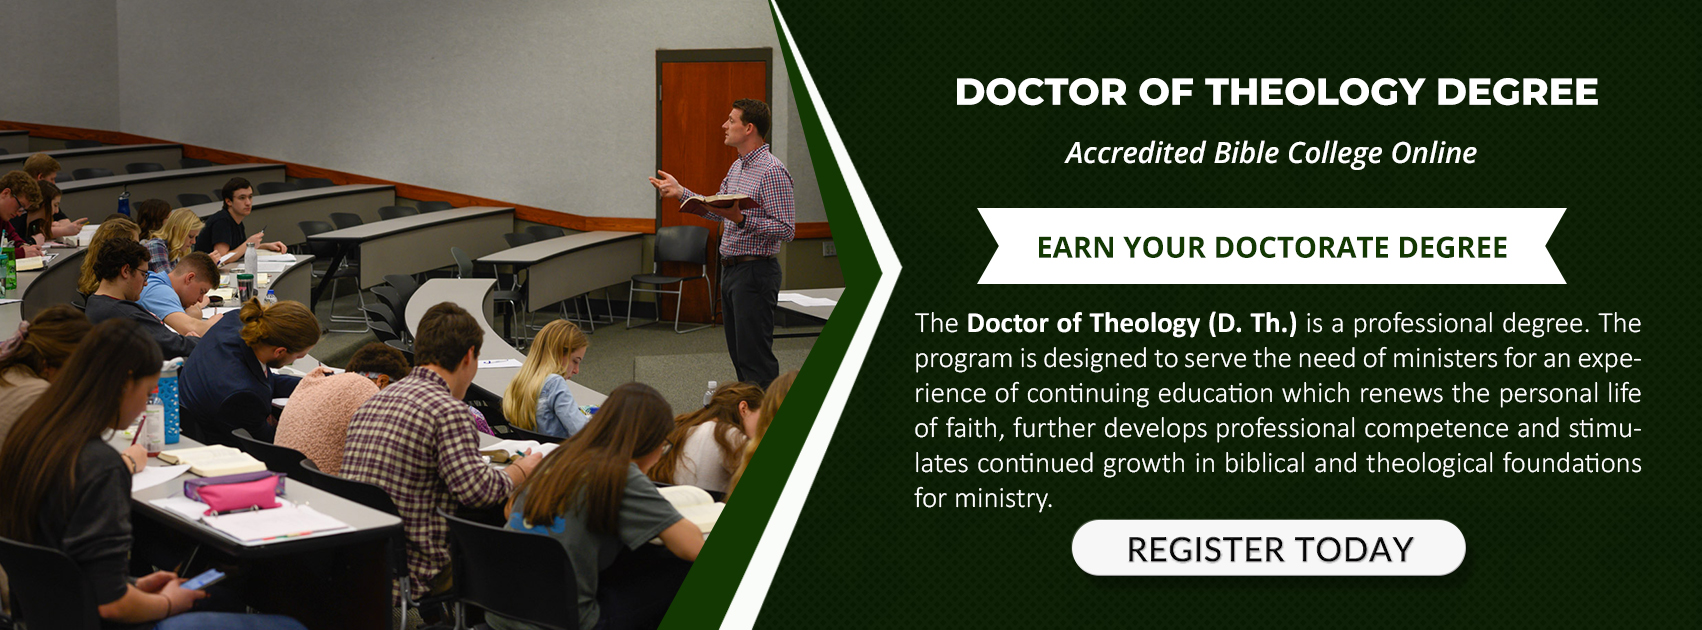 Doctor of Theology_Bible College Banner.jpg